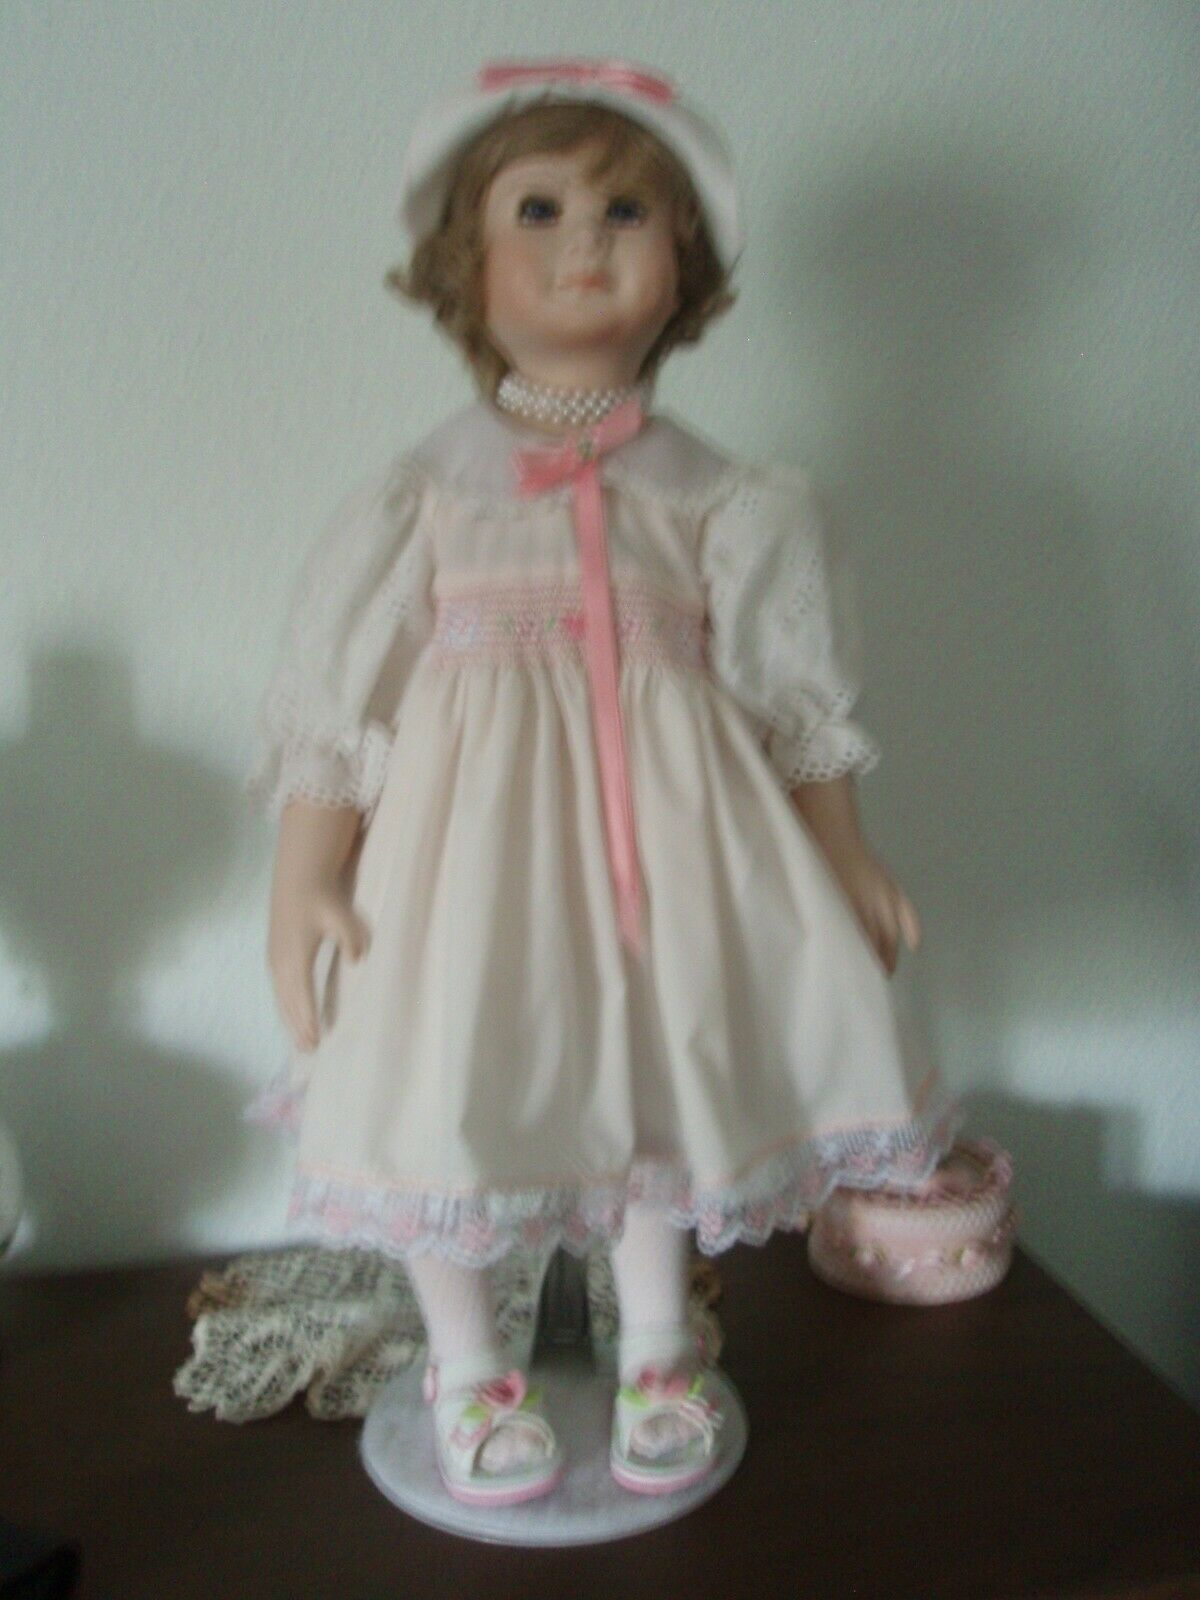 Girl Toddler 27  Doll Porcelain Bisque Head Arms Legs Cloth Body Handmade - NEW